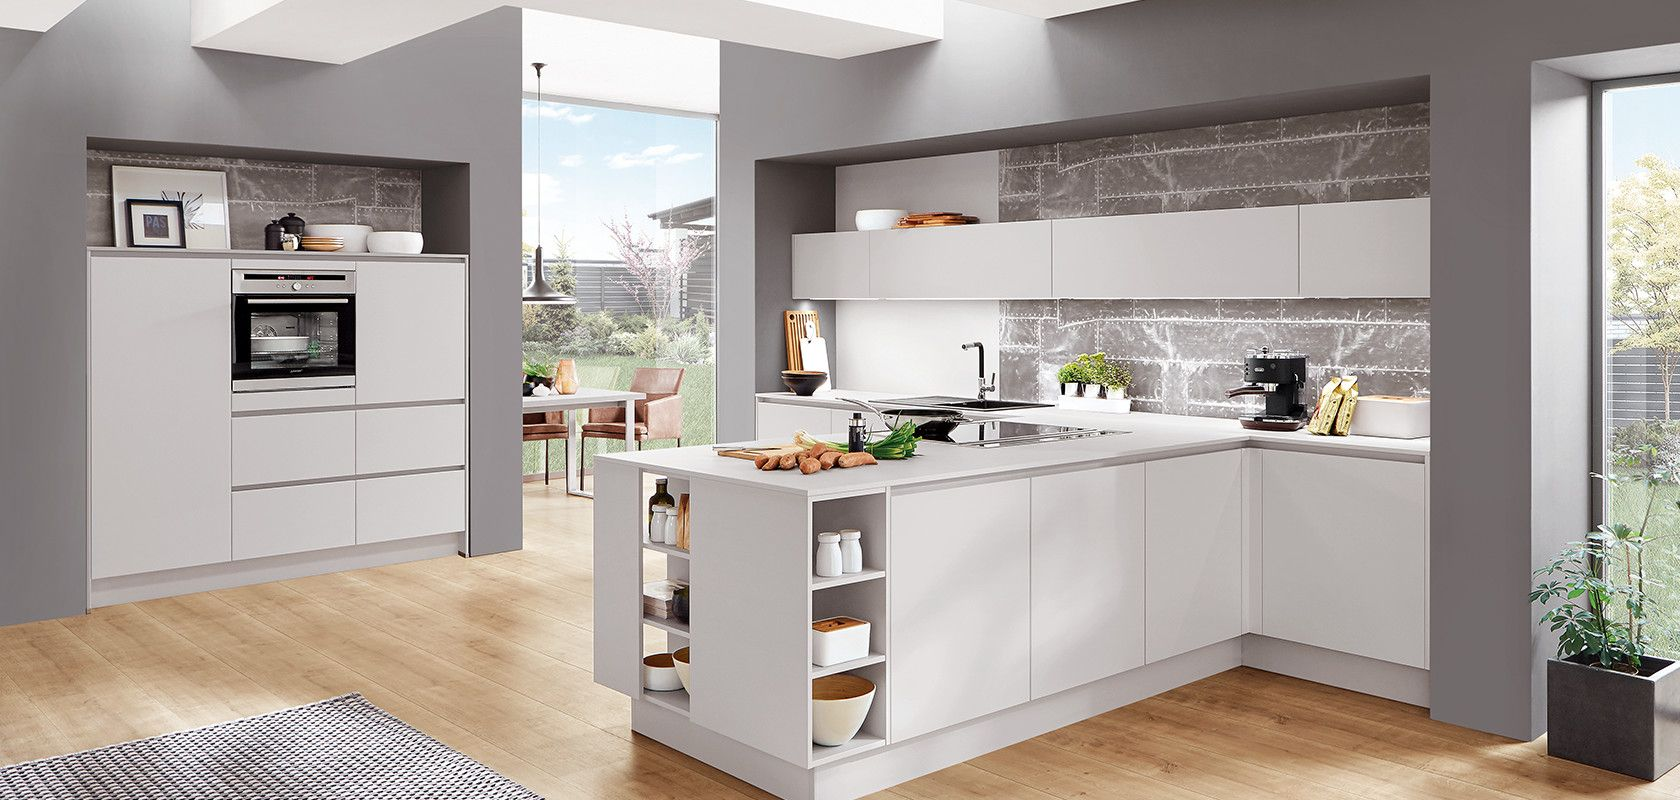 Are You Interested In High End Kitchens In Brooklyn Ny Our High End Kitchens In Brooklyn Ny Are Hailed World Einbaukuche Innenarchitektur Kuche Kuchendesign